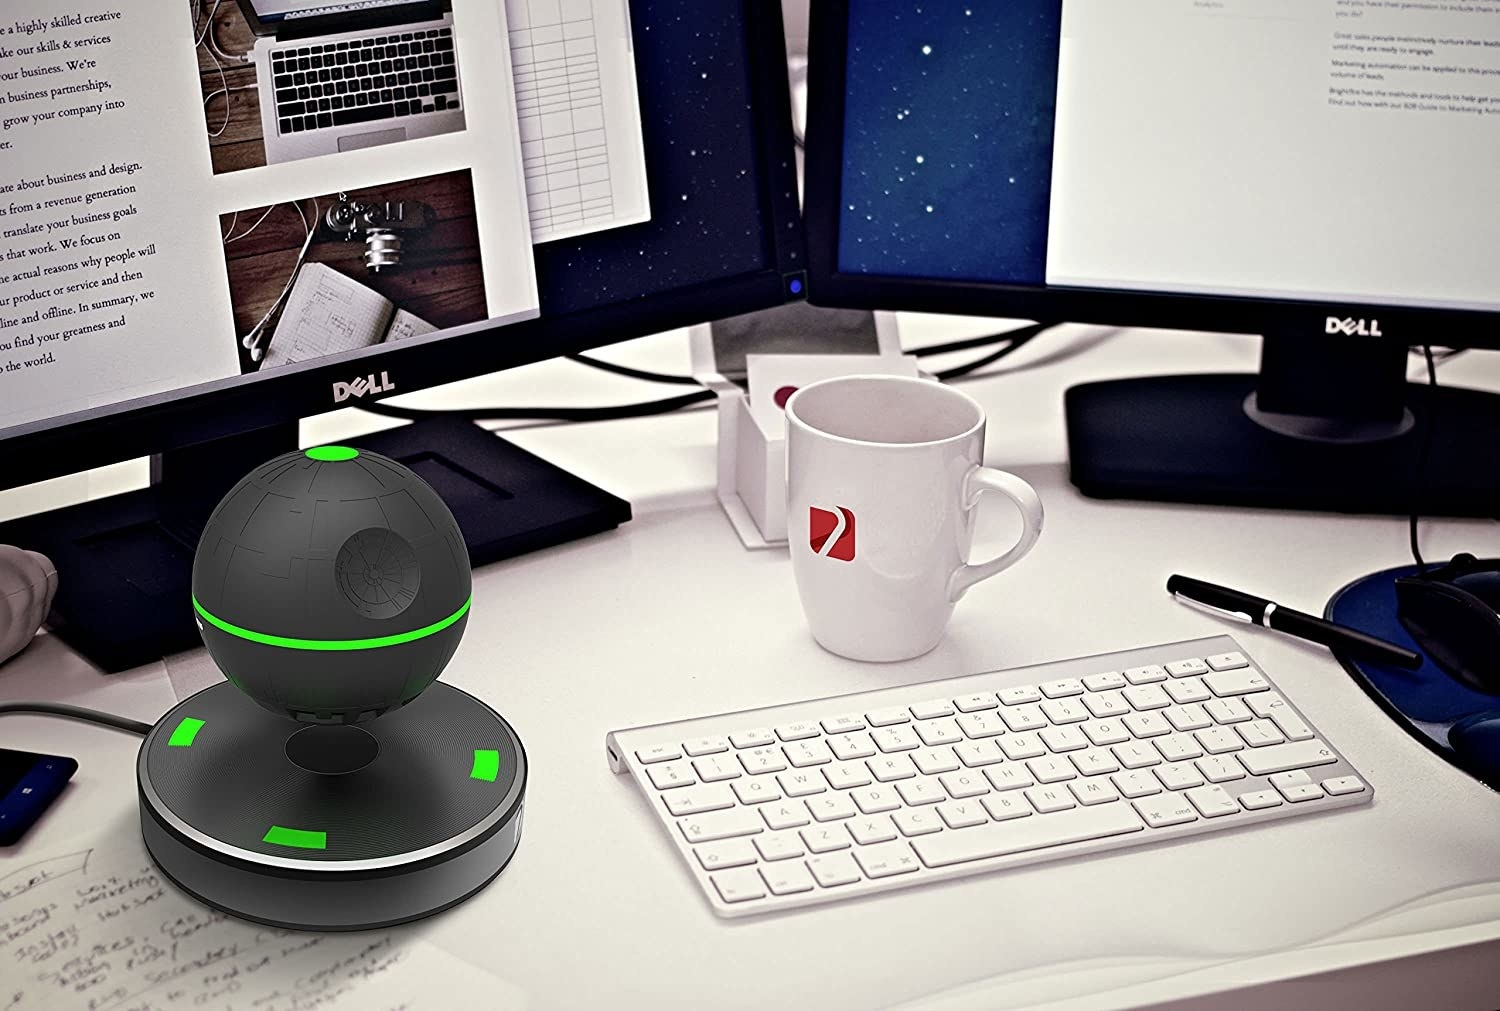 Green and black floating speaker on a desk with a keyboard and monitor